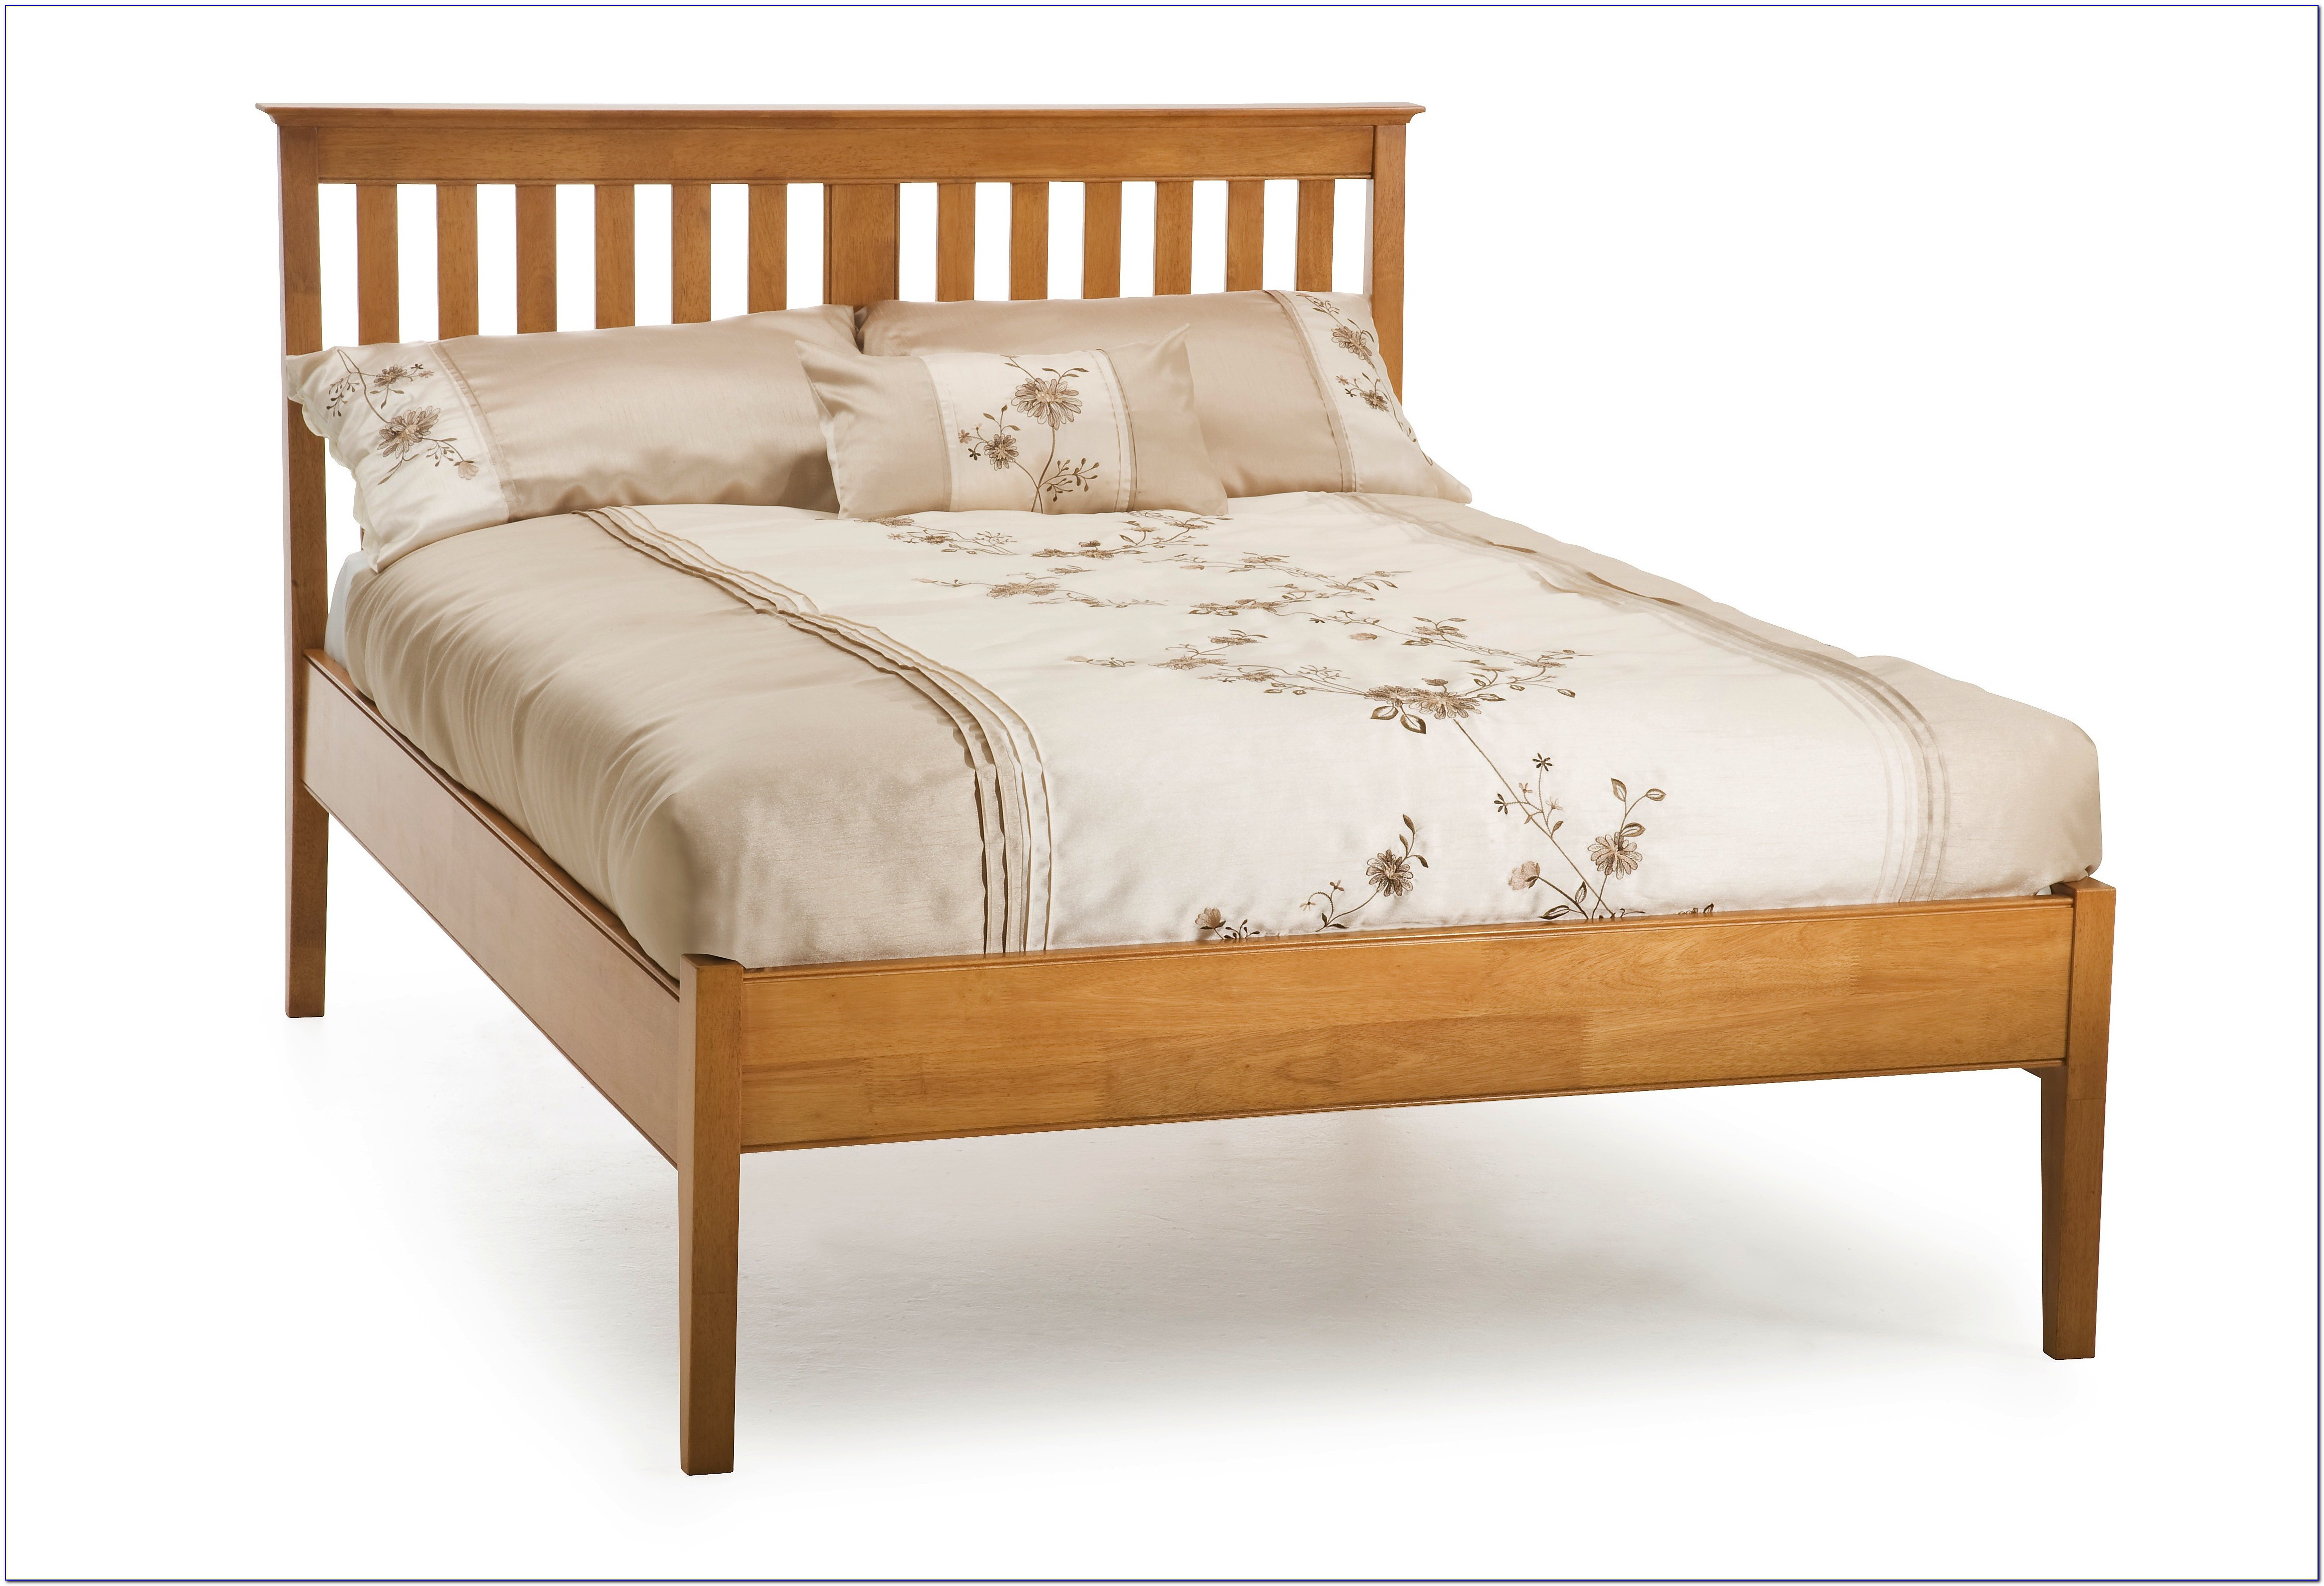 Headboard For Zinus Bed Frame